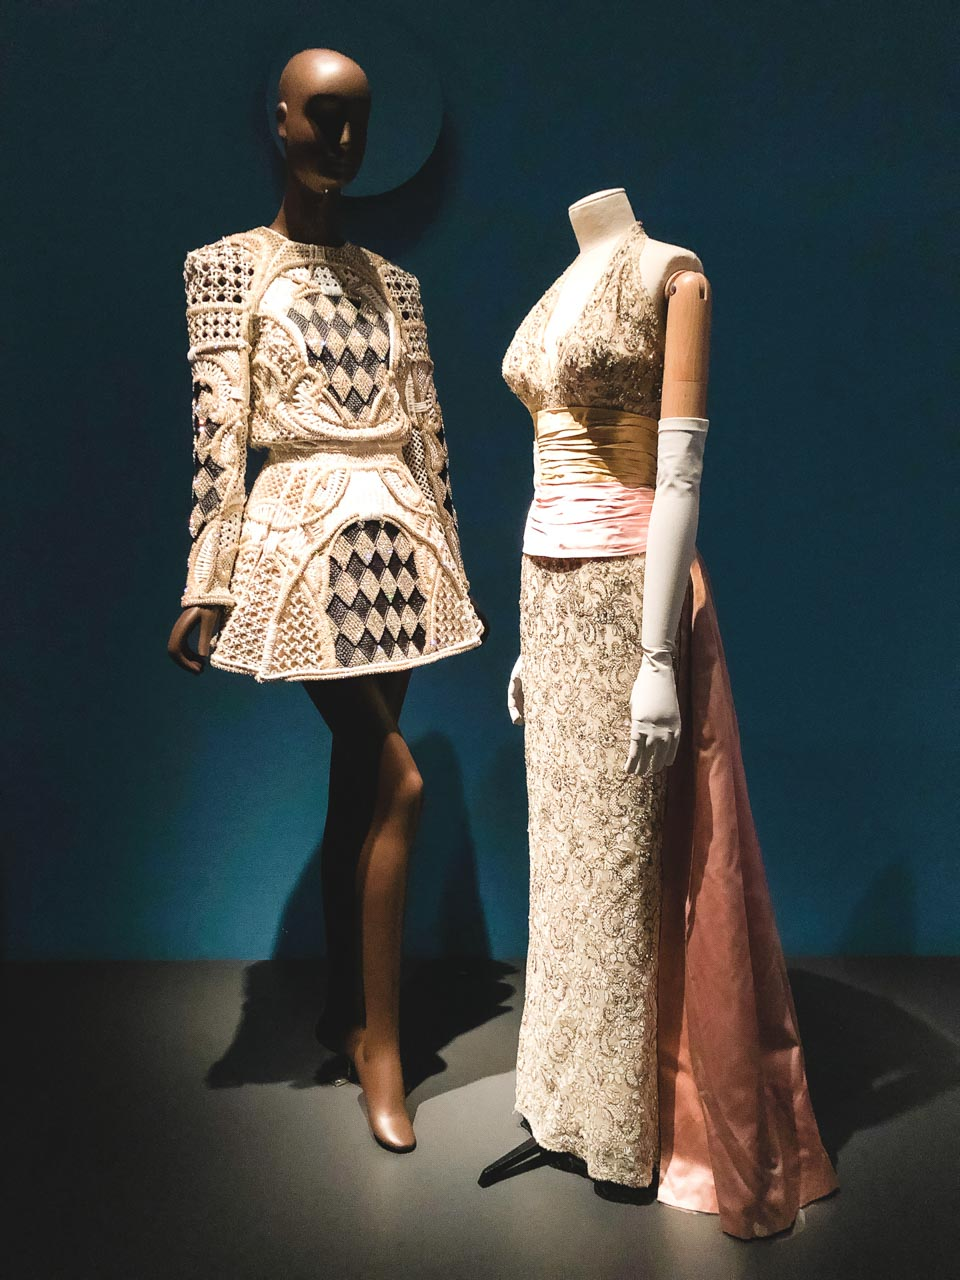 Balmain dresses on display at the Museum at the Fashion Institute of Technology in New York